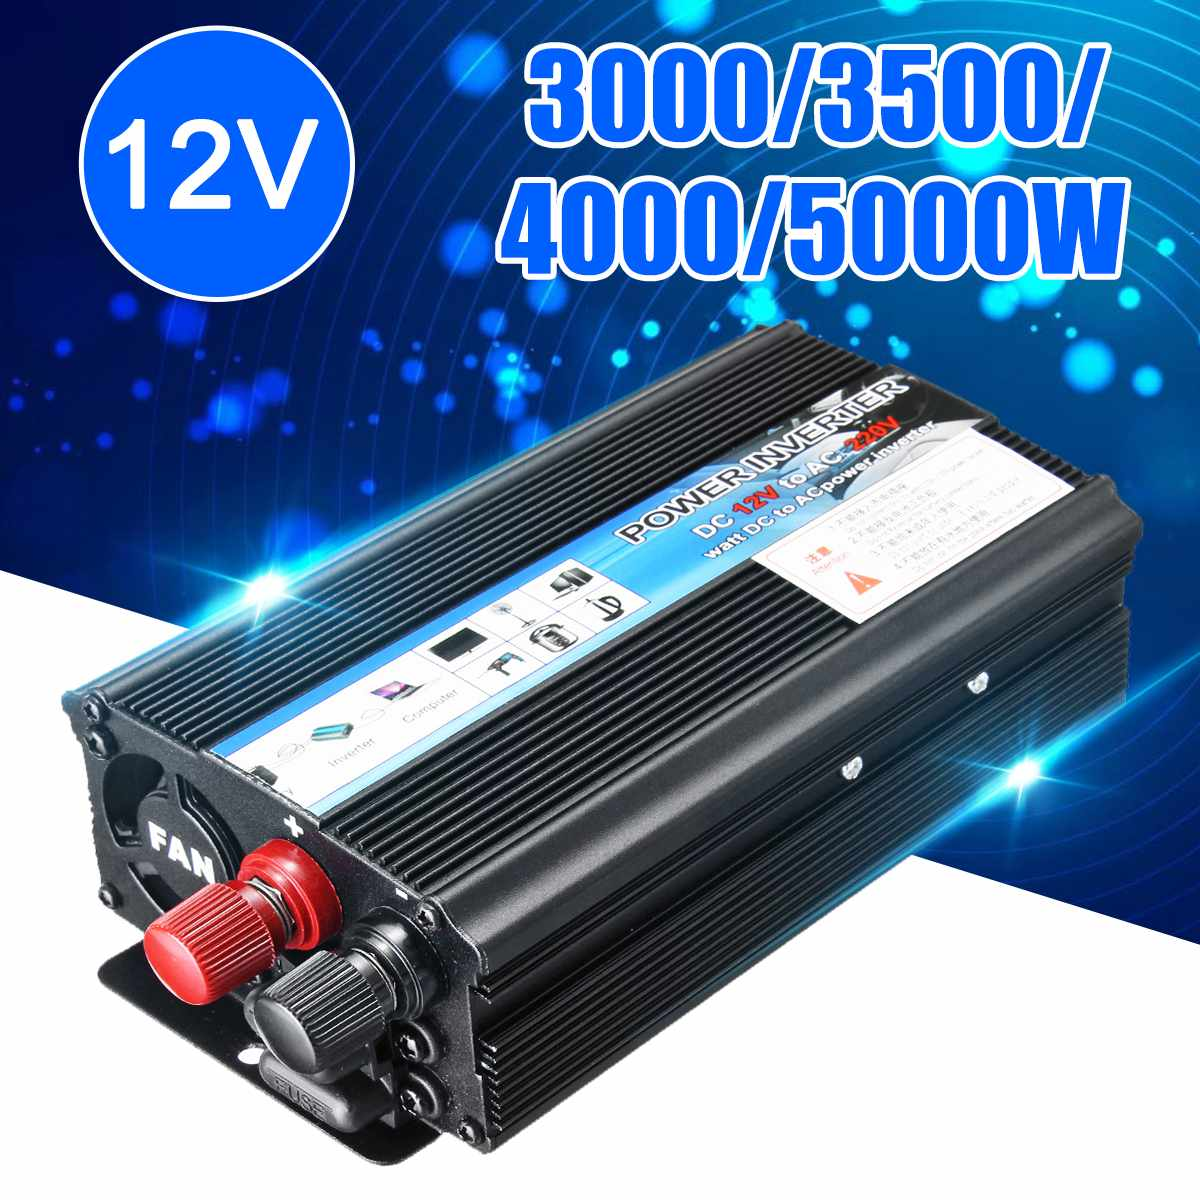 Inverter Car-Power Watt Portable 220 Sine 5000W-3000 To Wave 12V DC AC AC